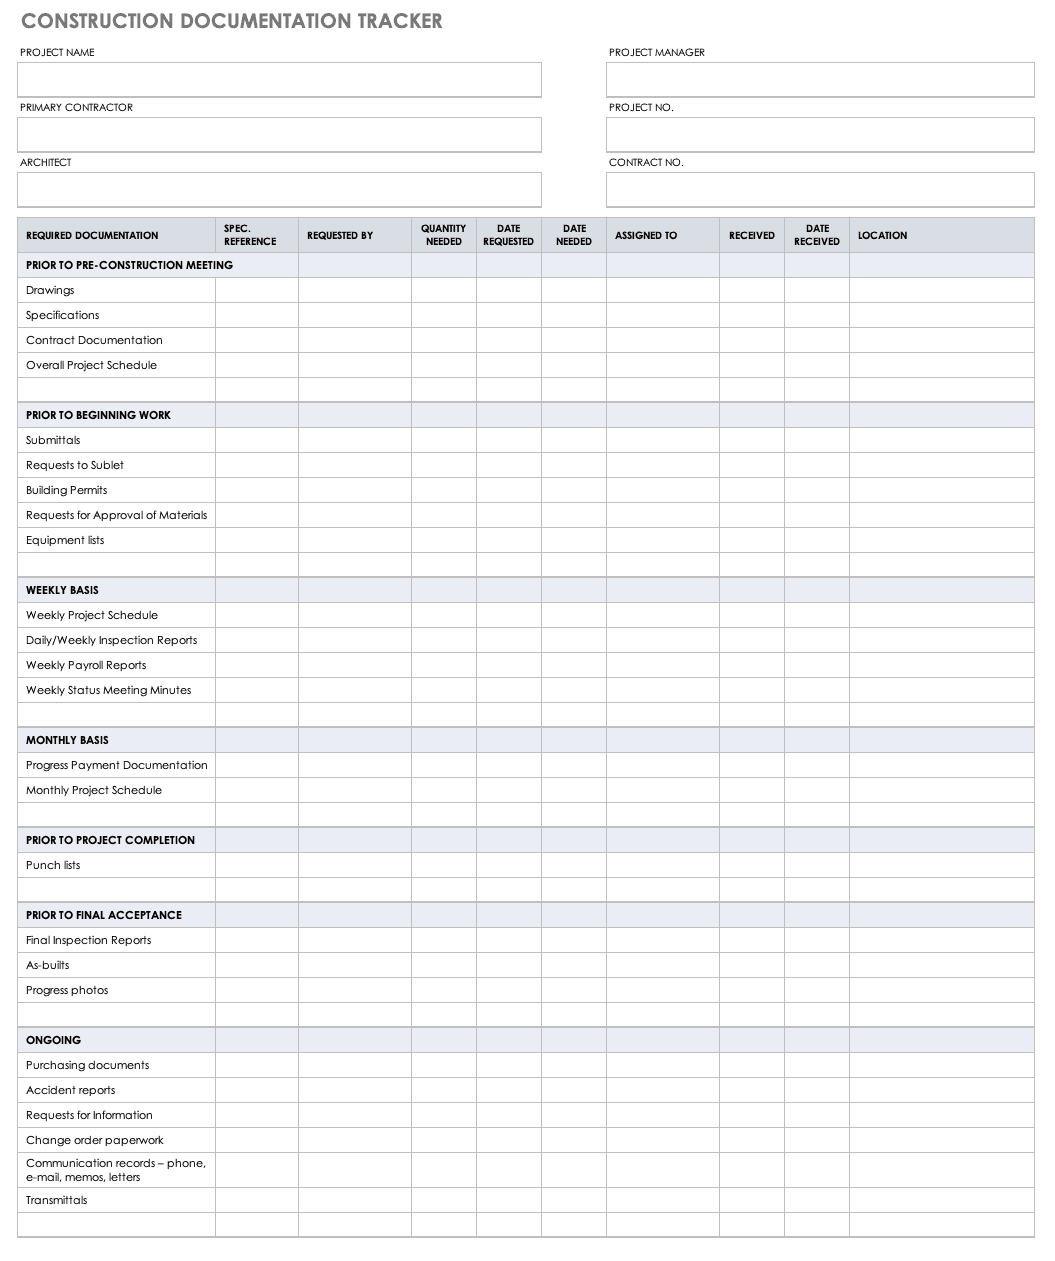 Construction Documentation Tracker Template